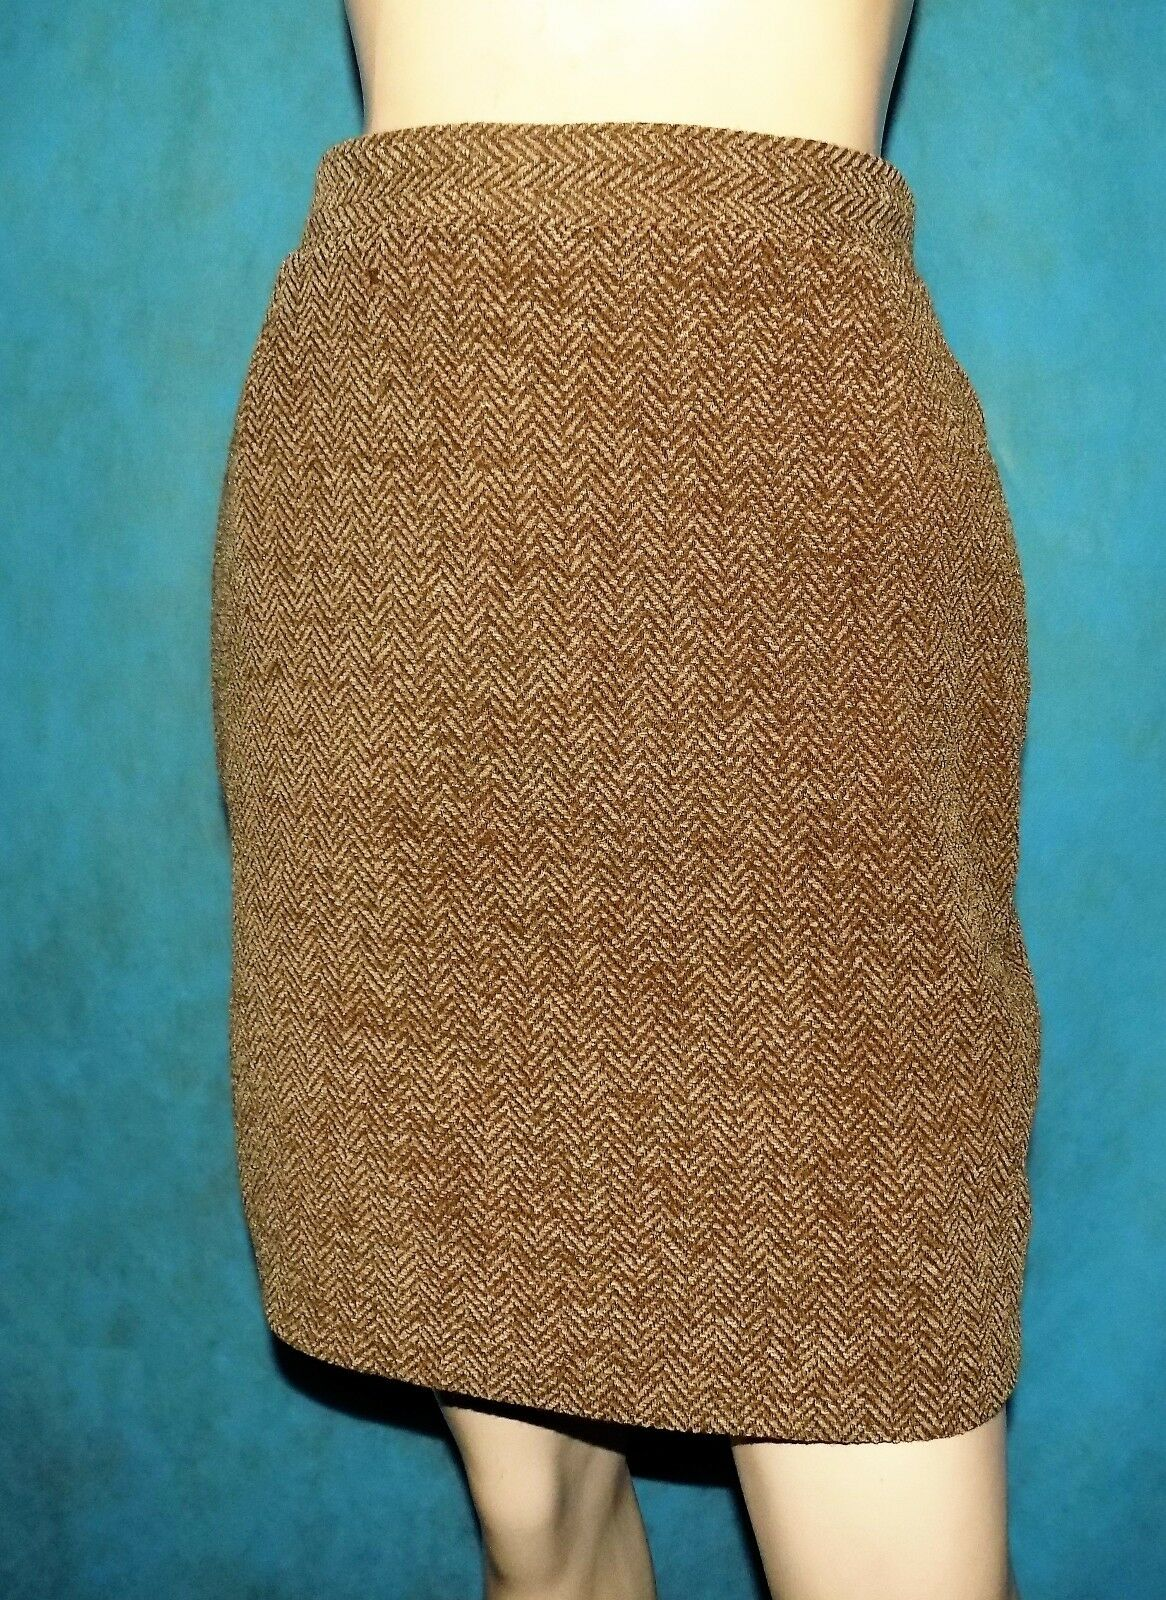 Skirt BARBARA BUI 50% wool Size 36 FR or 40 IT VERY GOOD CONDITION